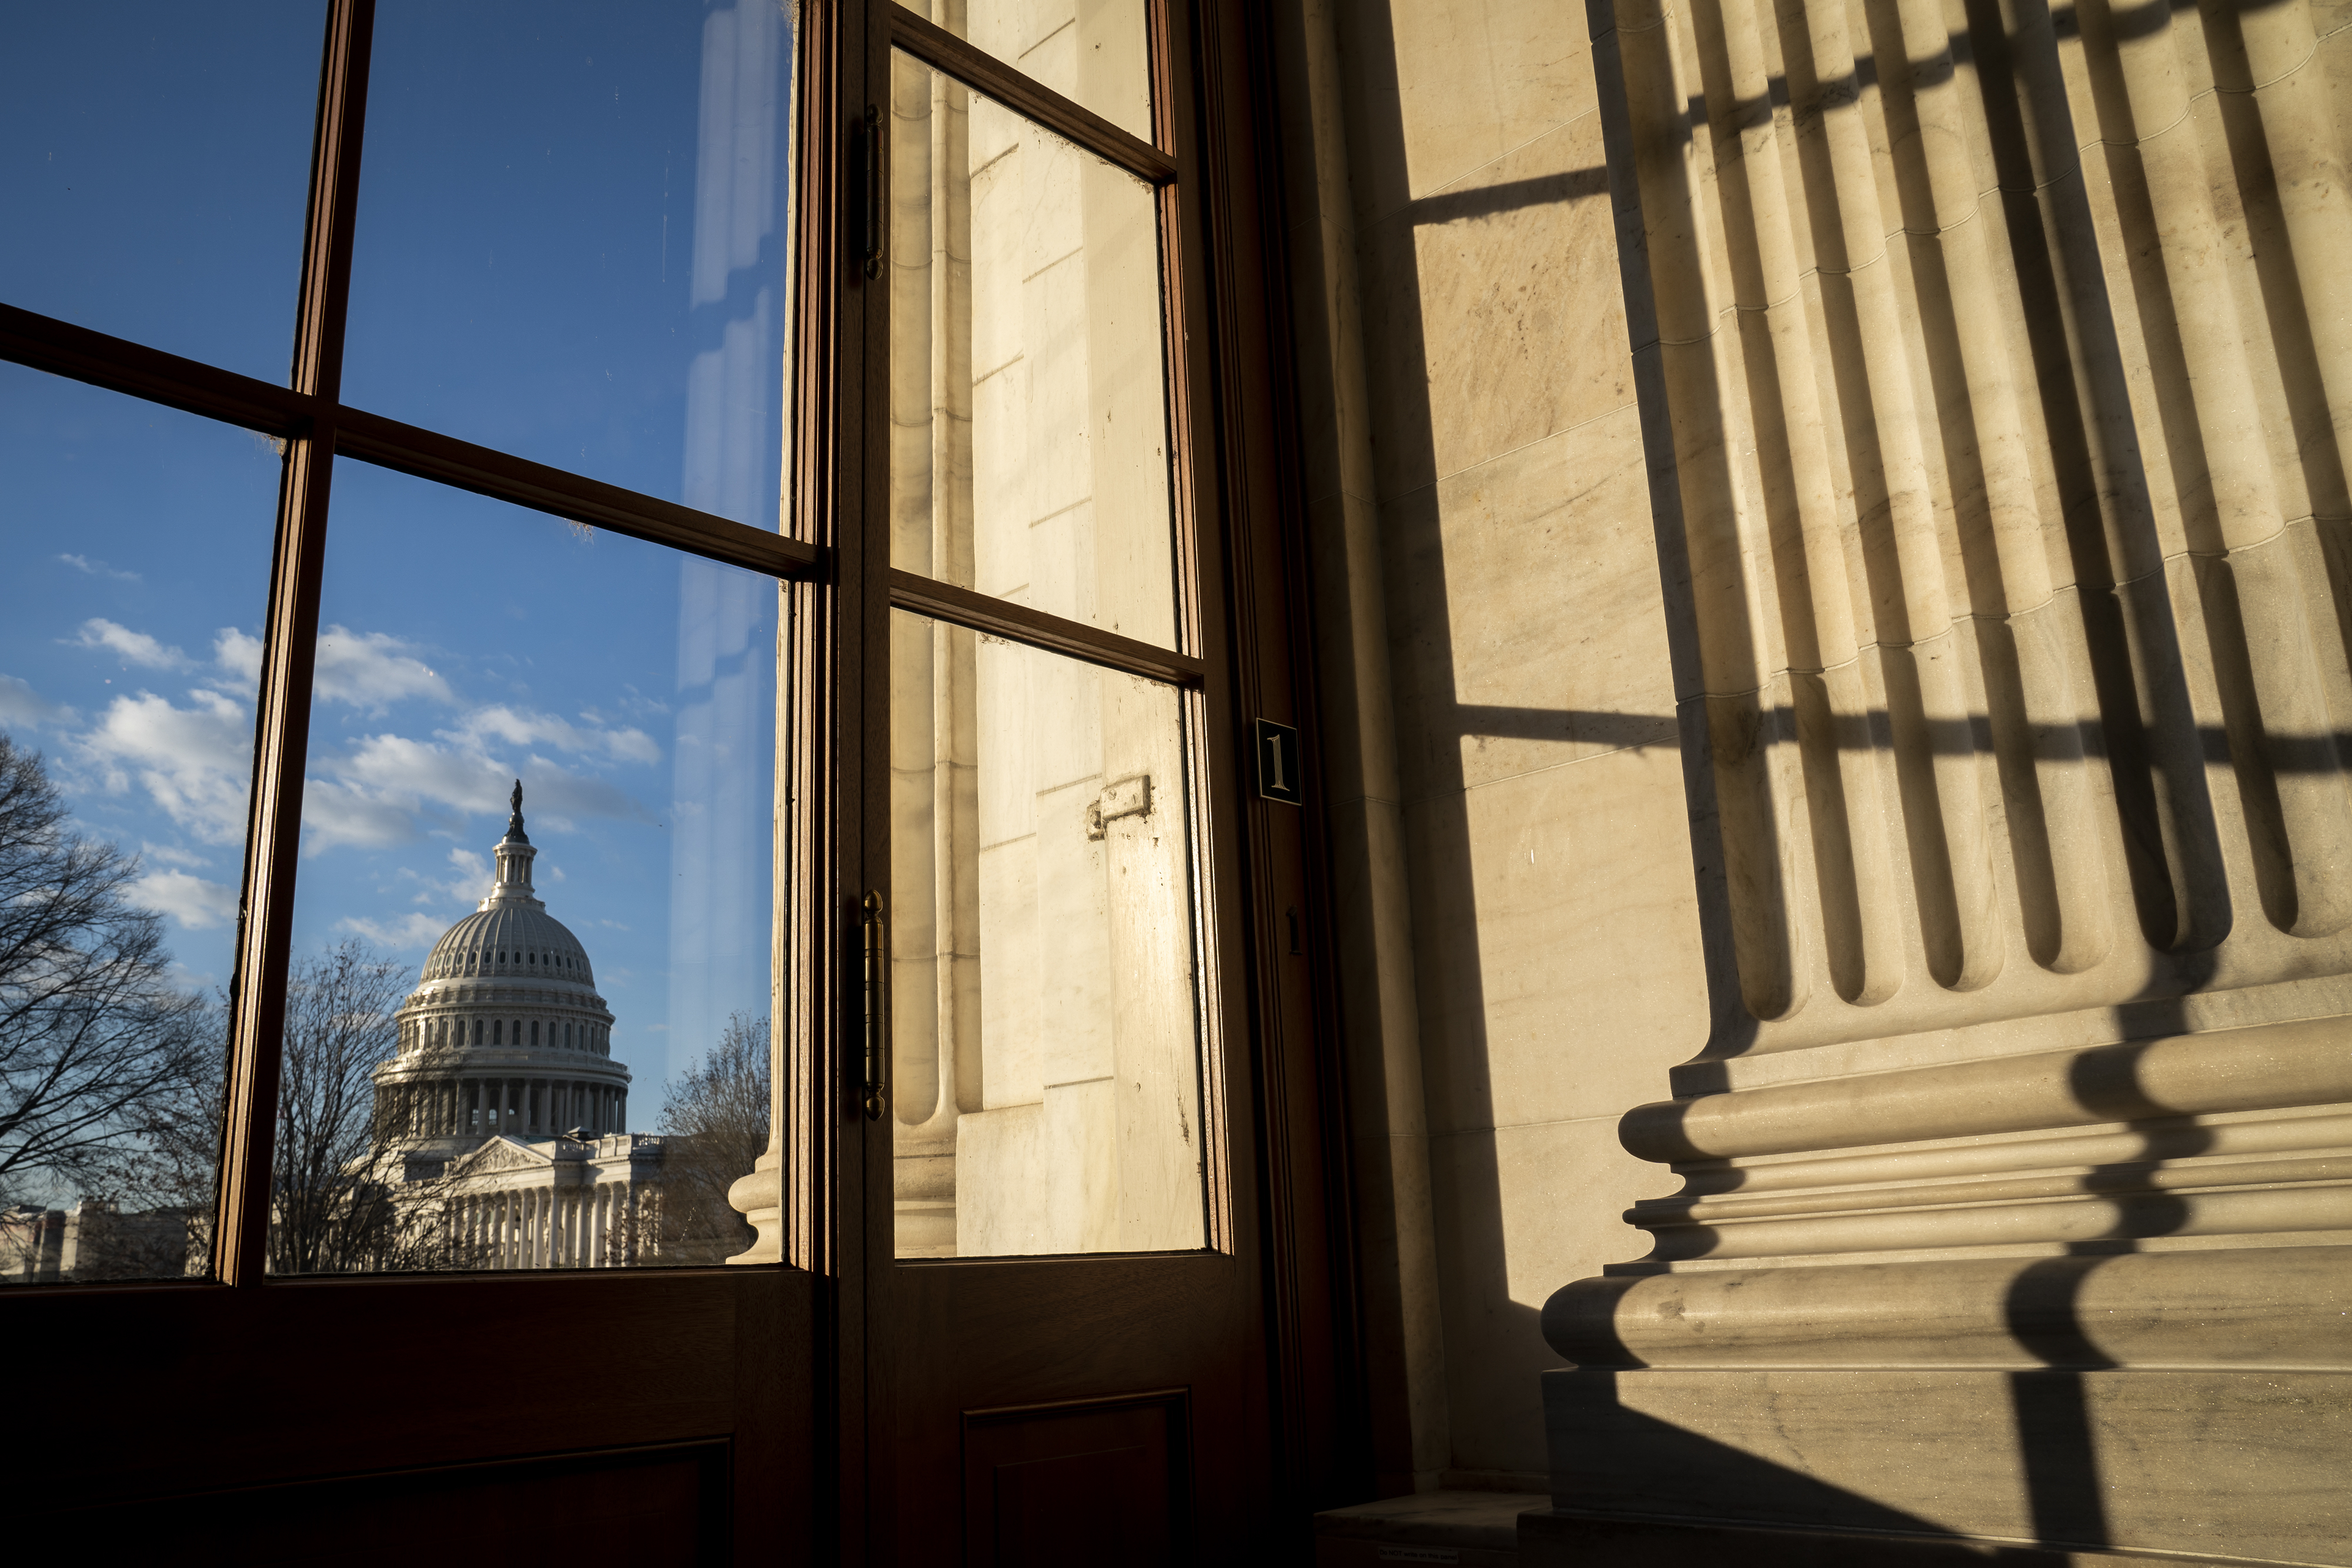 The Capitol is seen in Washington, early Monday, Jan. 6, 2020, as Congress returns to Washington to face the challenge of fallout from President Donald Trump's military strike in Iraq that killed Iranian official, Gen. Qassem Soleimani. (AP Photo/J. Scott Applewhite)